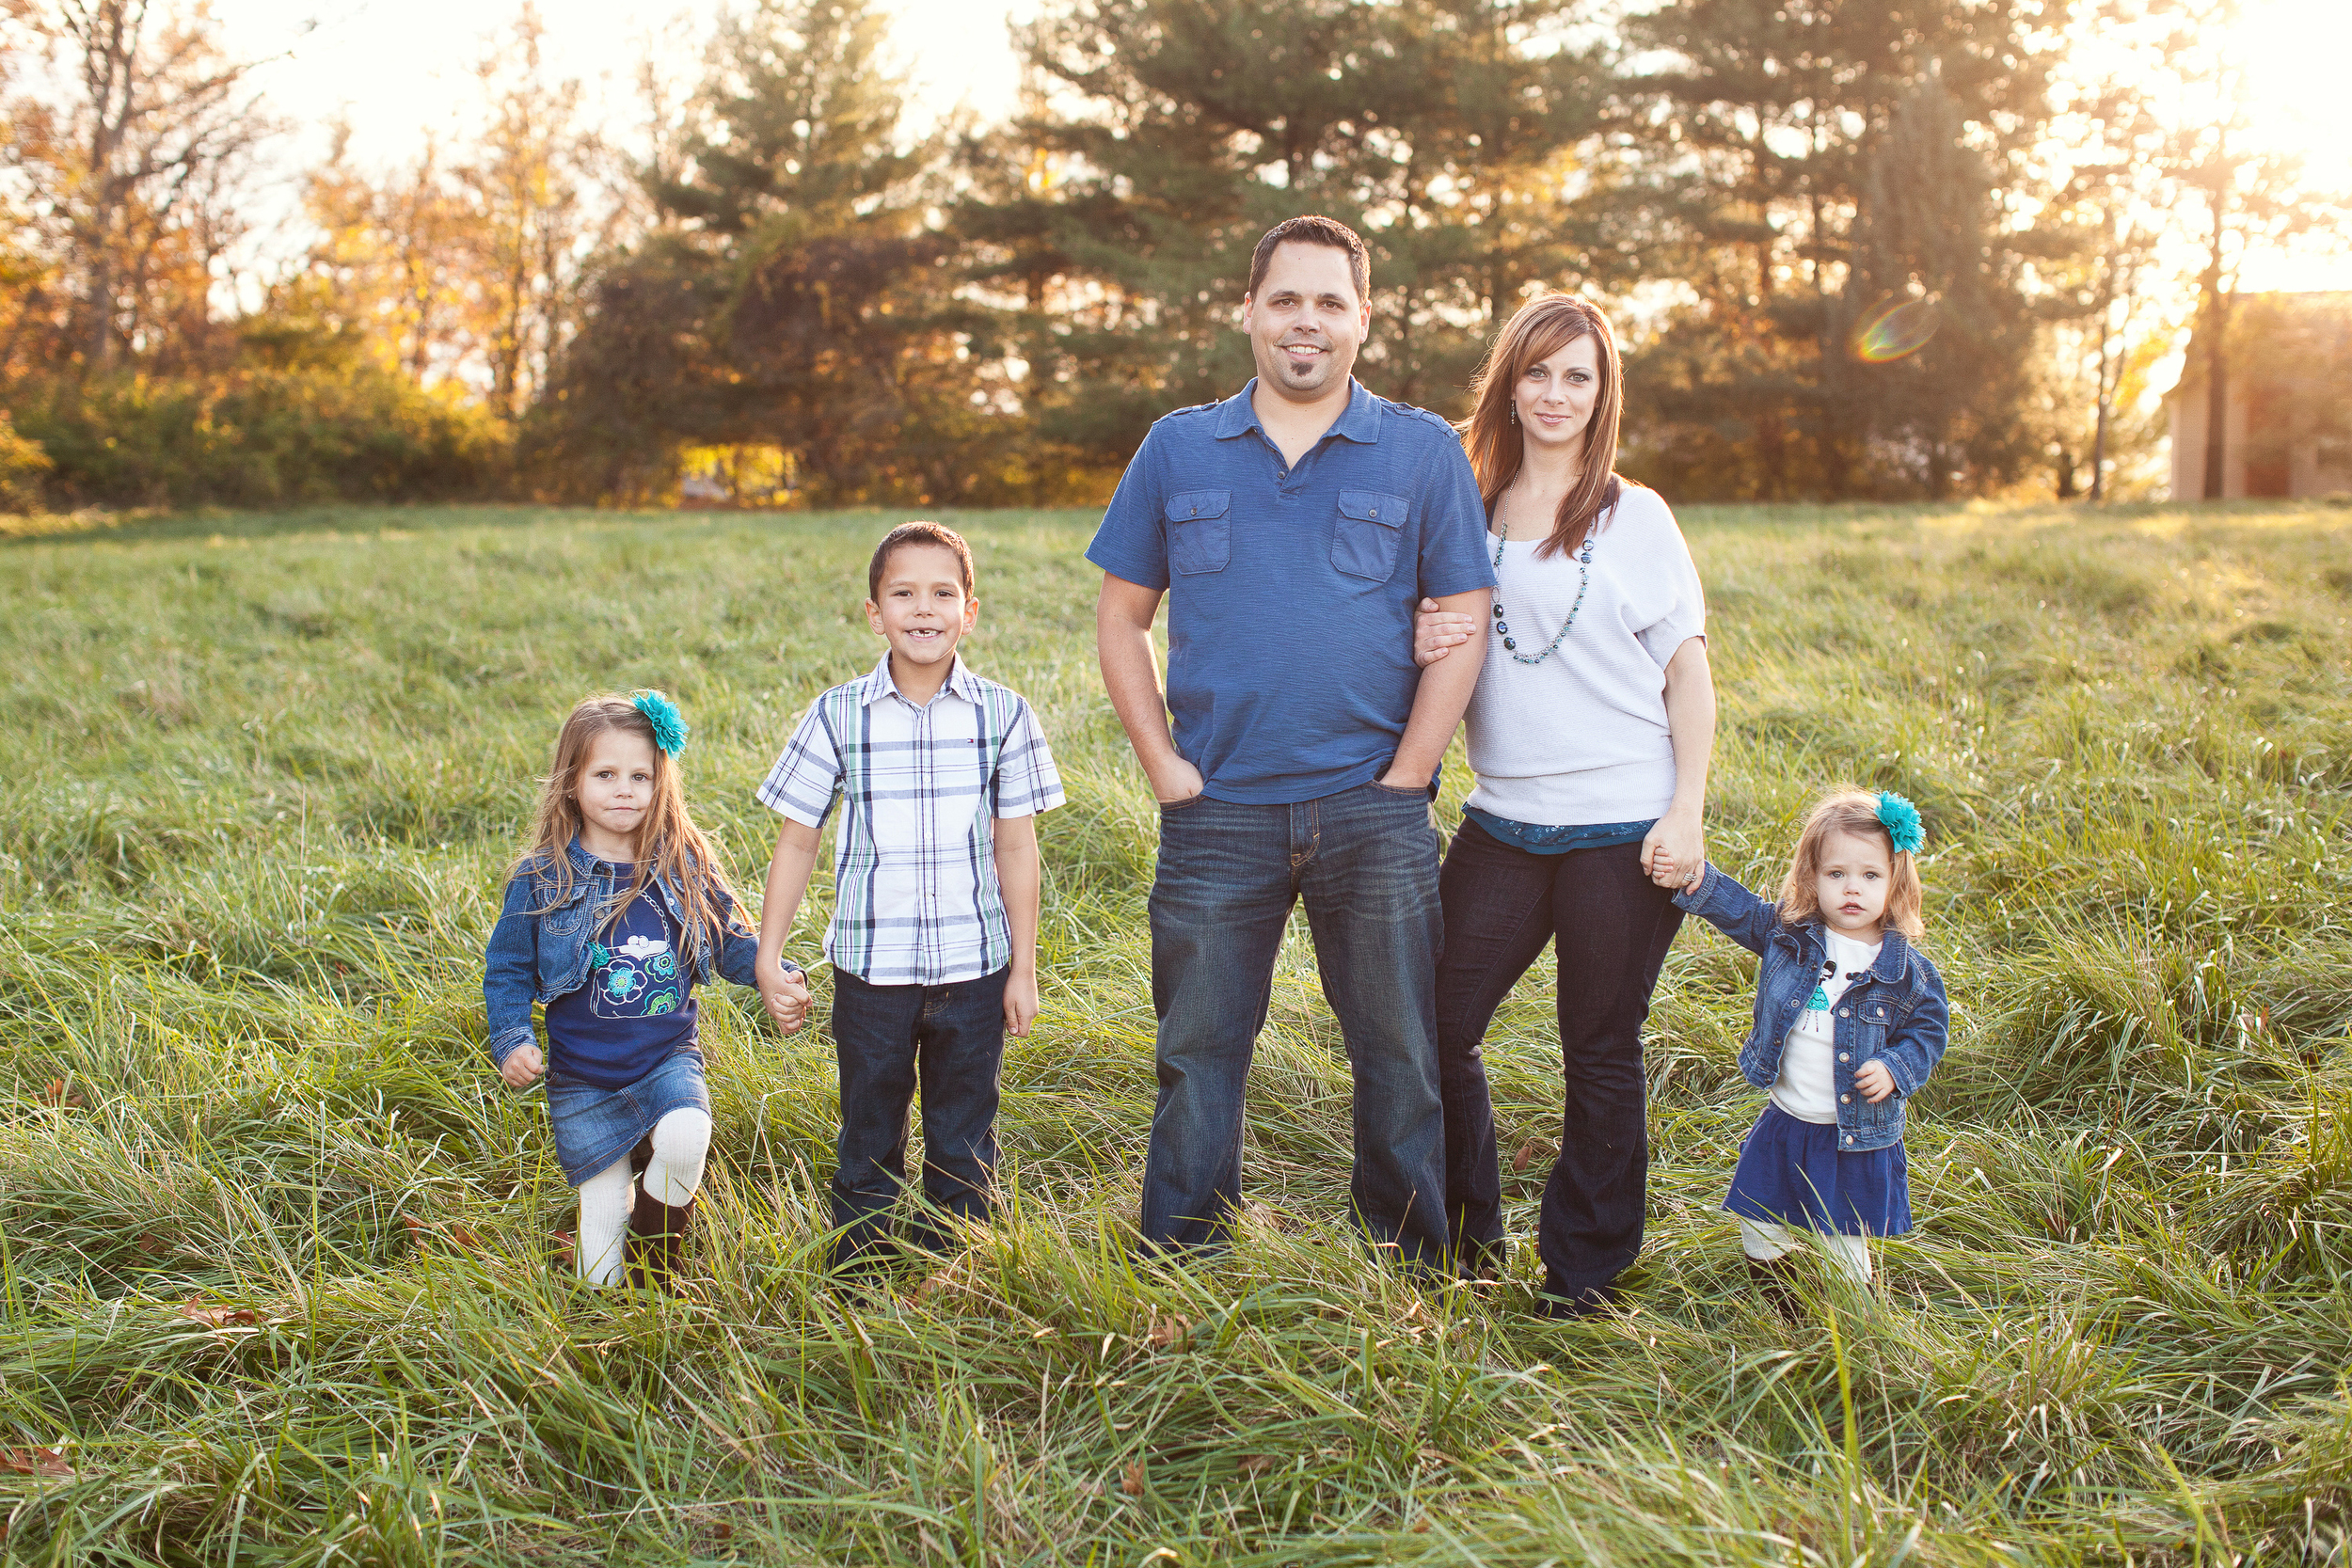 St-Louis-Family-Photographer_Ashley-Becker_0013.jpg